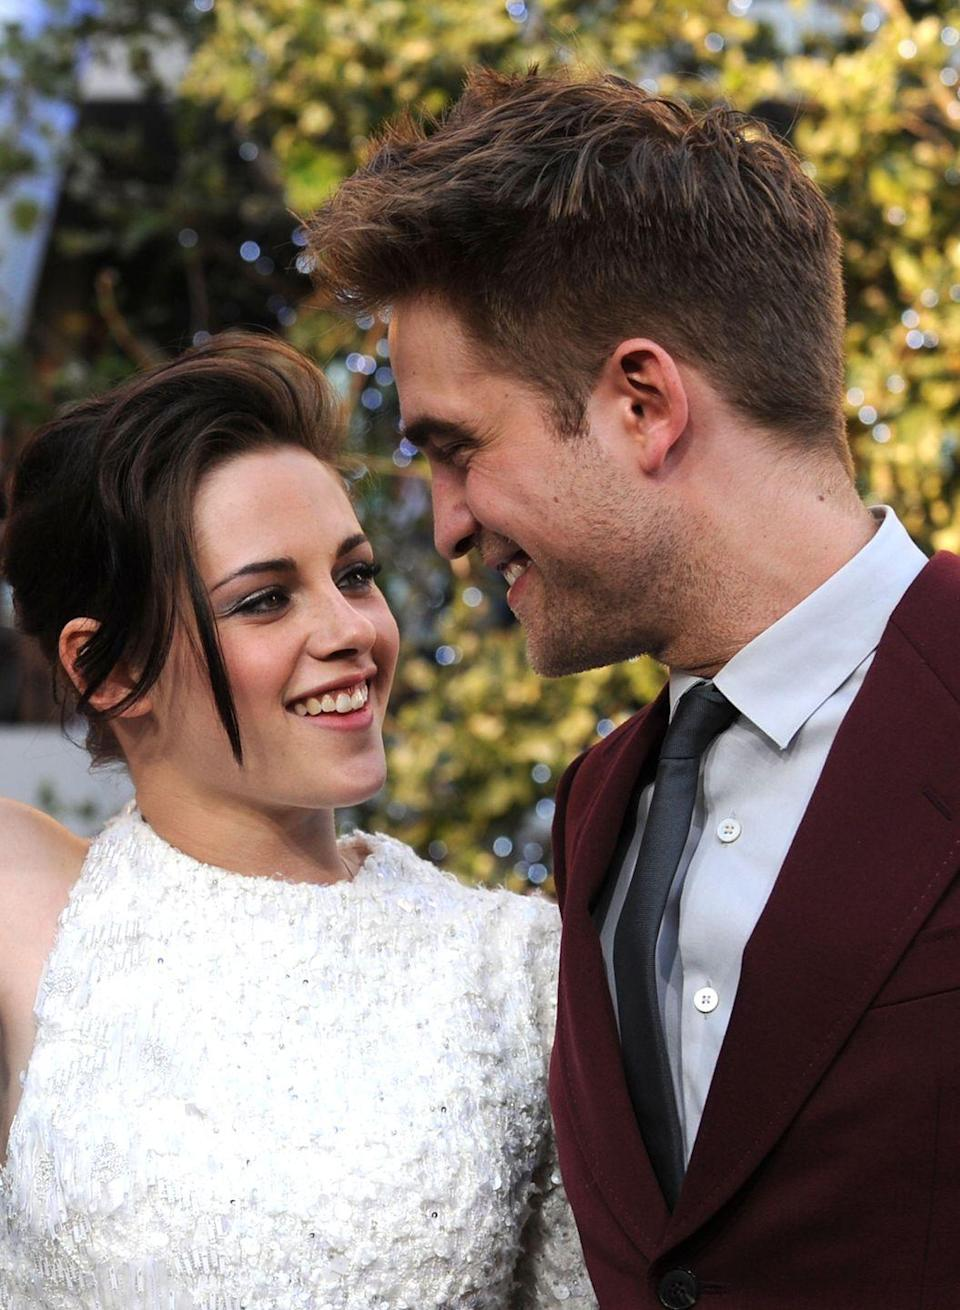 """<p>While playing Bella Swan and Edward Cullen in the movie adaptation of the Twilight saga, Kristen Stewart and Robert Pattison took their chemistry off screen in 2009. </p><p>Their relationship came to an abrupt end three years later when Kristen admitted to cheating on Robert with Snow White and The Huntsman director, Rupert Sanders. 'I'm deeply sorry for the hurt and embarrassment I've caused to those close to me and everyone this has affected,' <a href=""""https://people.com/celebrity/kristen-stewarts-apology-to-robert-pattinson-for-cheating/"""" rel=""""nofollow noopener"""" target=""""_blank"""" data-ylk=""""slk:Kristen said"""" class=""""link rapid-noclick-resp"""">Kristen said</a>. 'This momentary indiscretion has jeopardised the most important thing in my life, the person I love and respect the most, Rob. I love him, I love him, I'm so sorry.'</p>"""